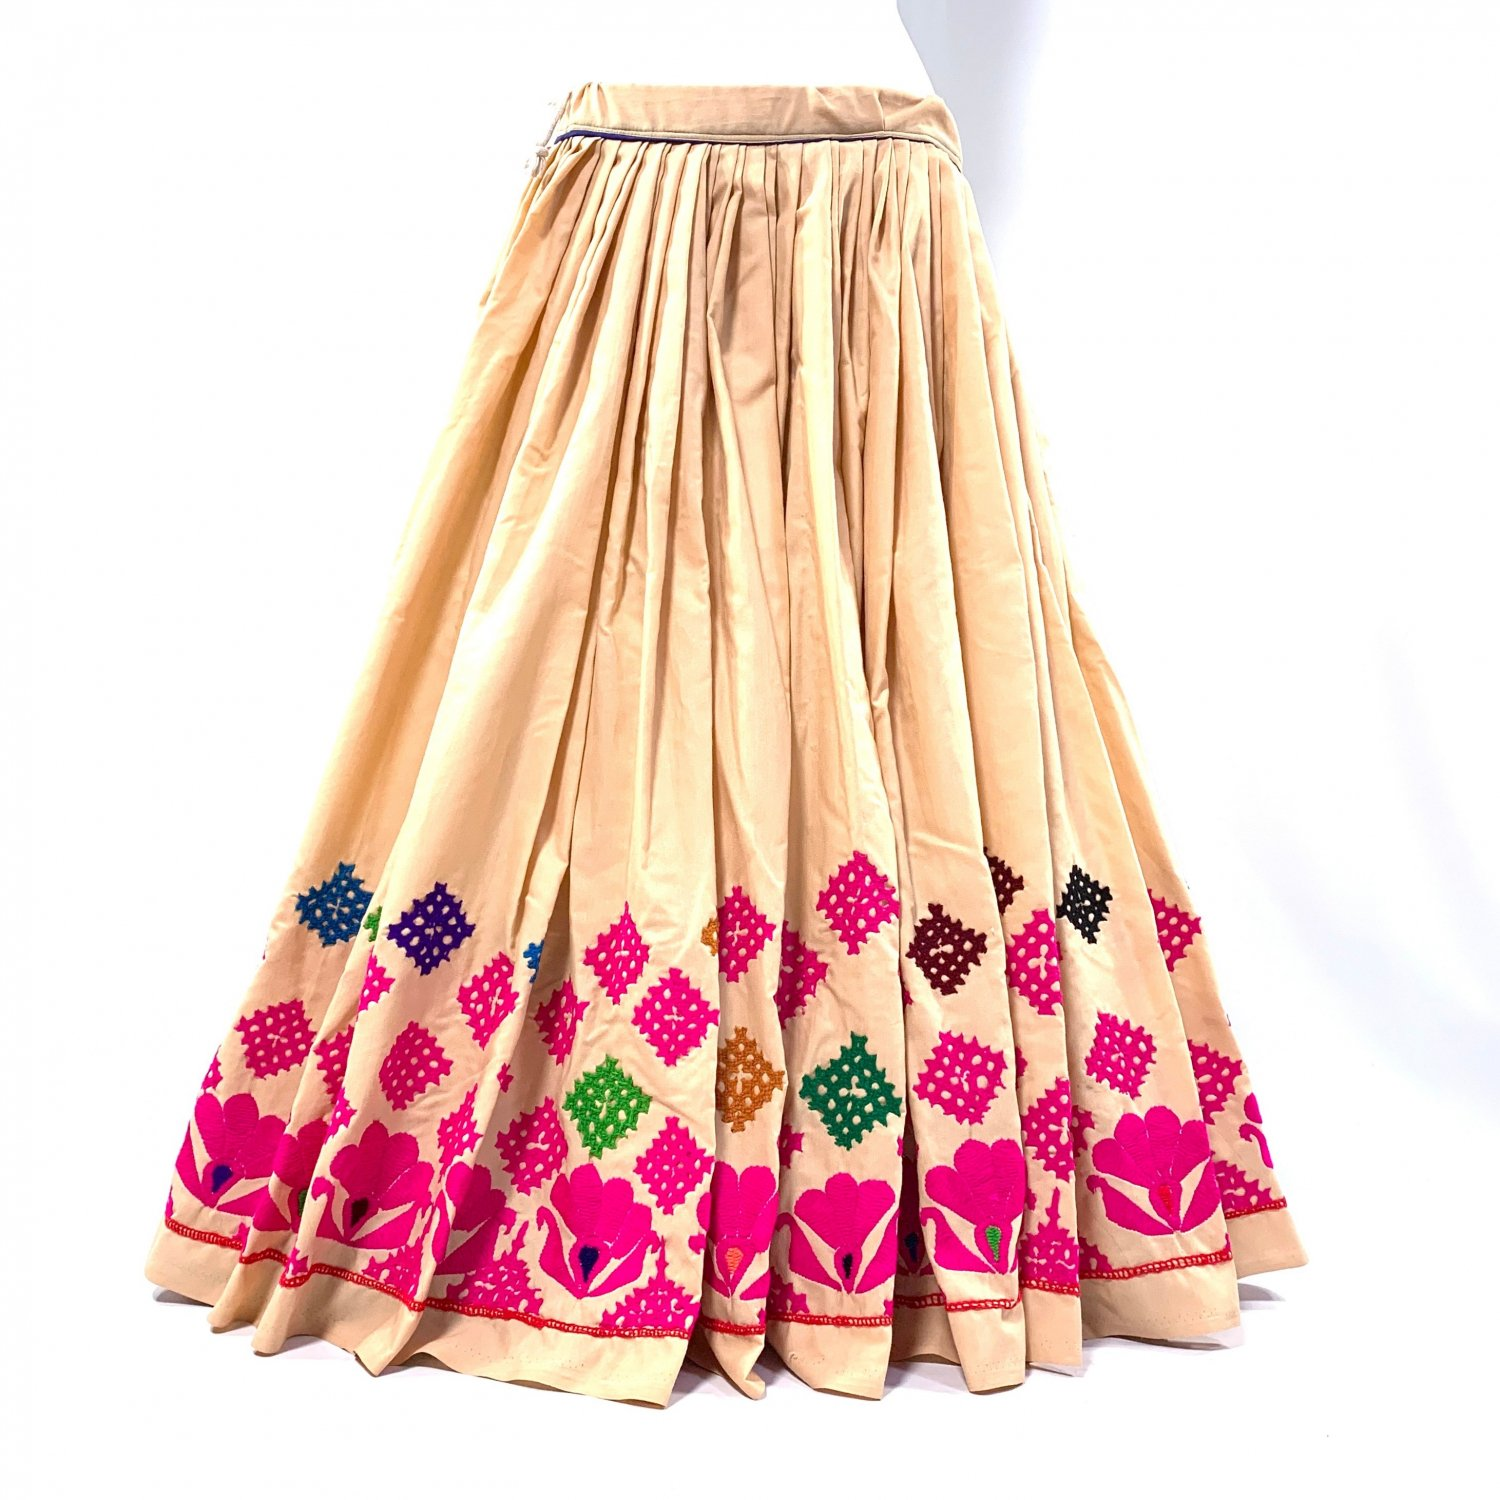 <img class='new_mark_img1' src='https://img.shop-pro.jp/img/new/icons1.gif' style='border:none;display:inline;margin:0px;padding:0px;width:auto;' />Rajasthani gypsy skirt #5* vintage * ラジャスタン刺繍スカート バンジャラ《ベージュ2》